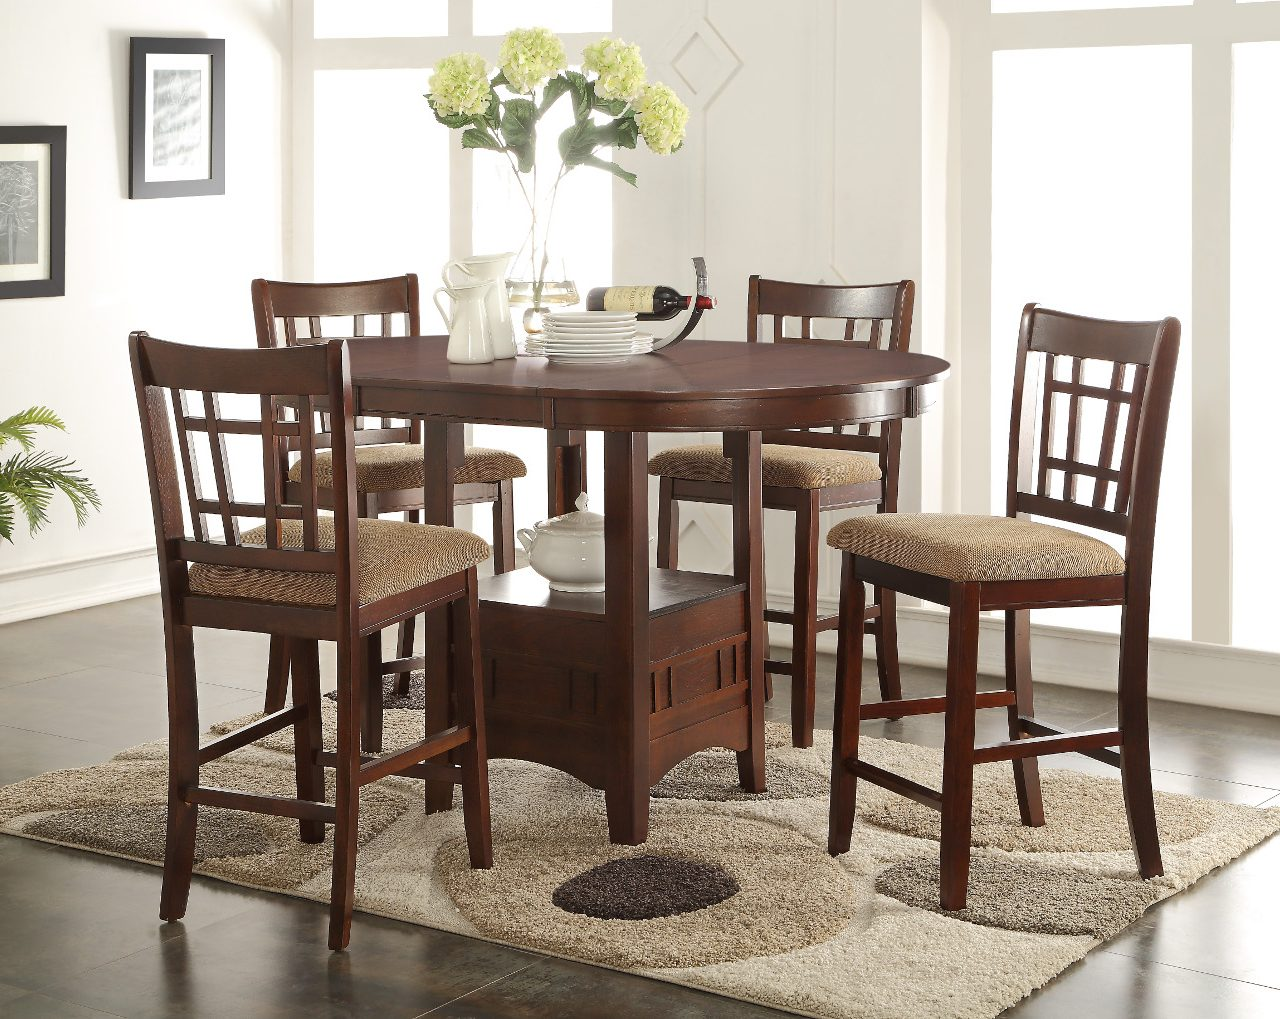 randolph counter height table with 4 chairs furniture